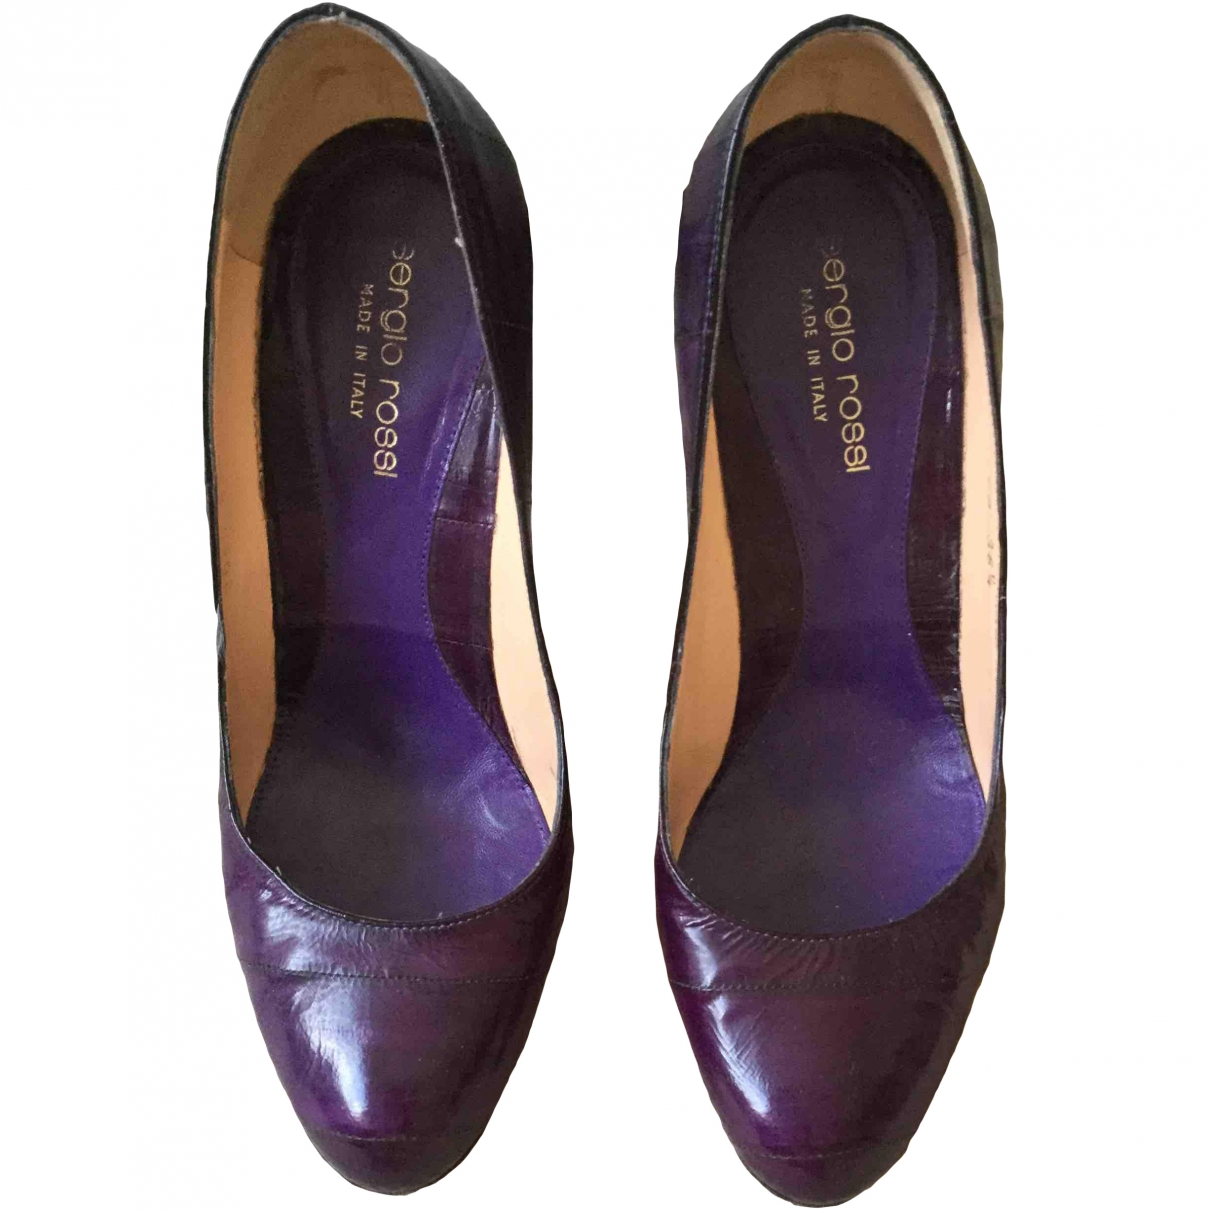 Sergio Rossi \N Purple Leather Heels for Women 36.5 EU